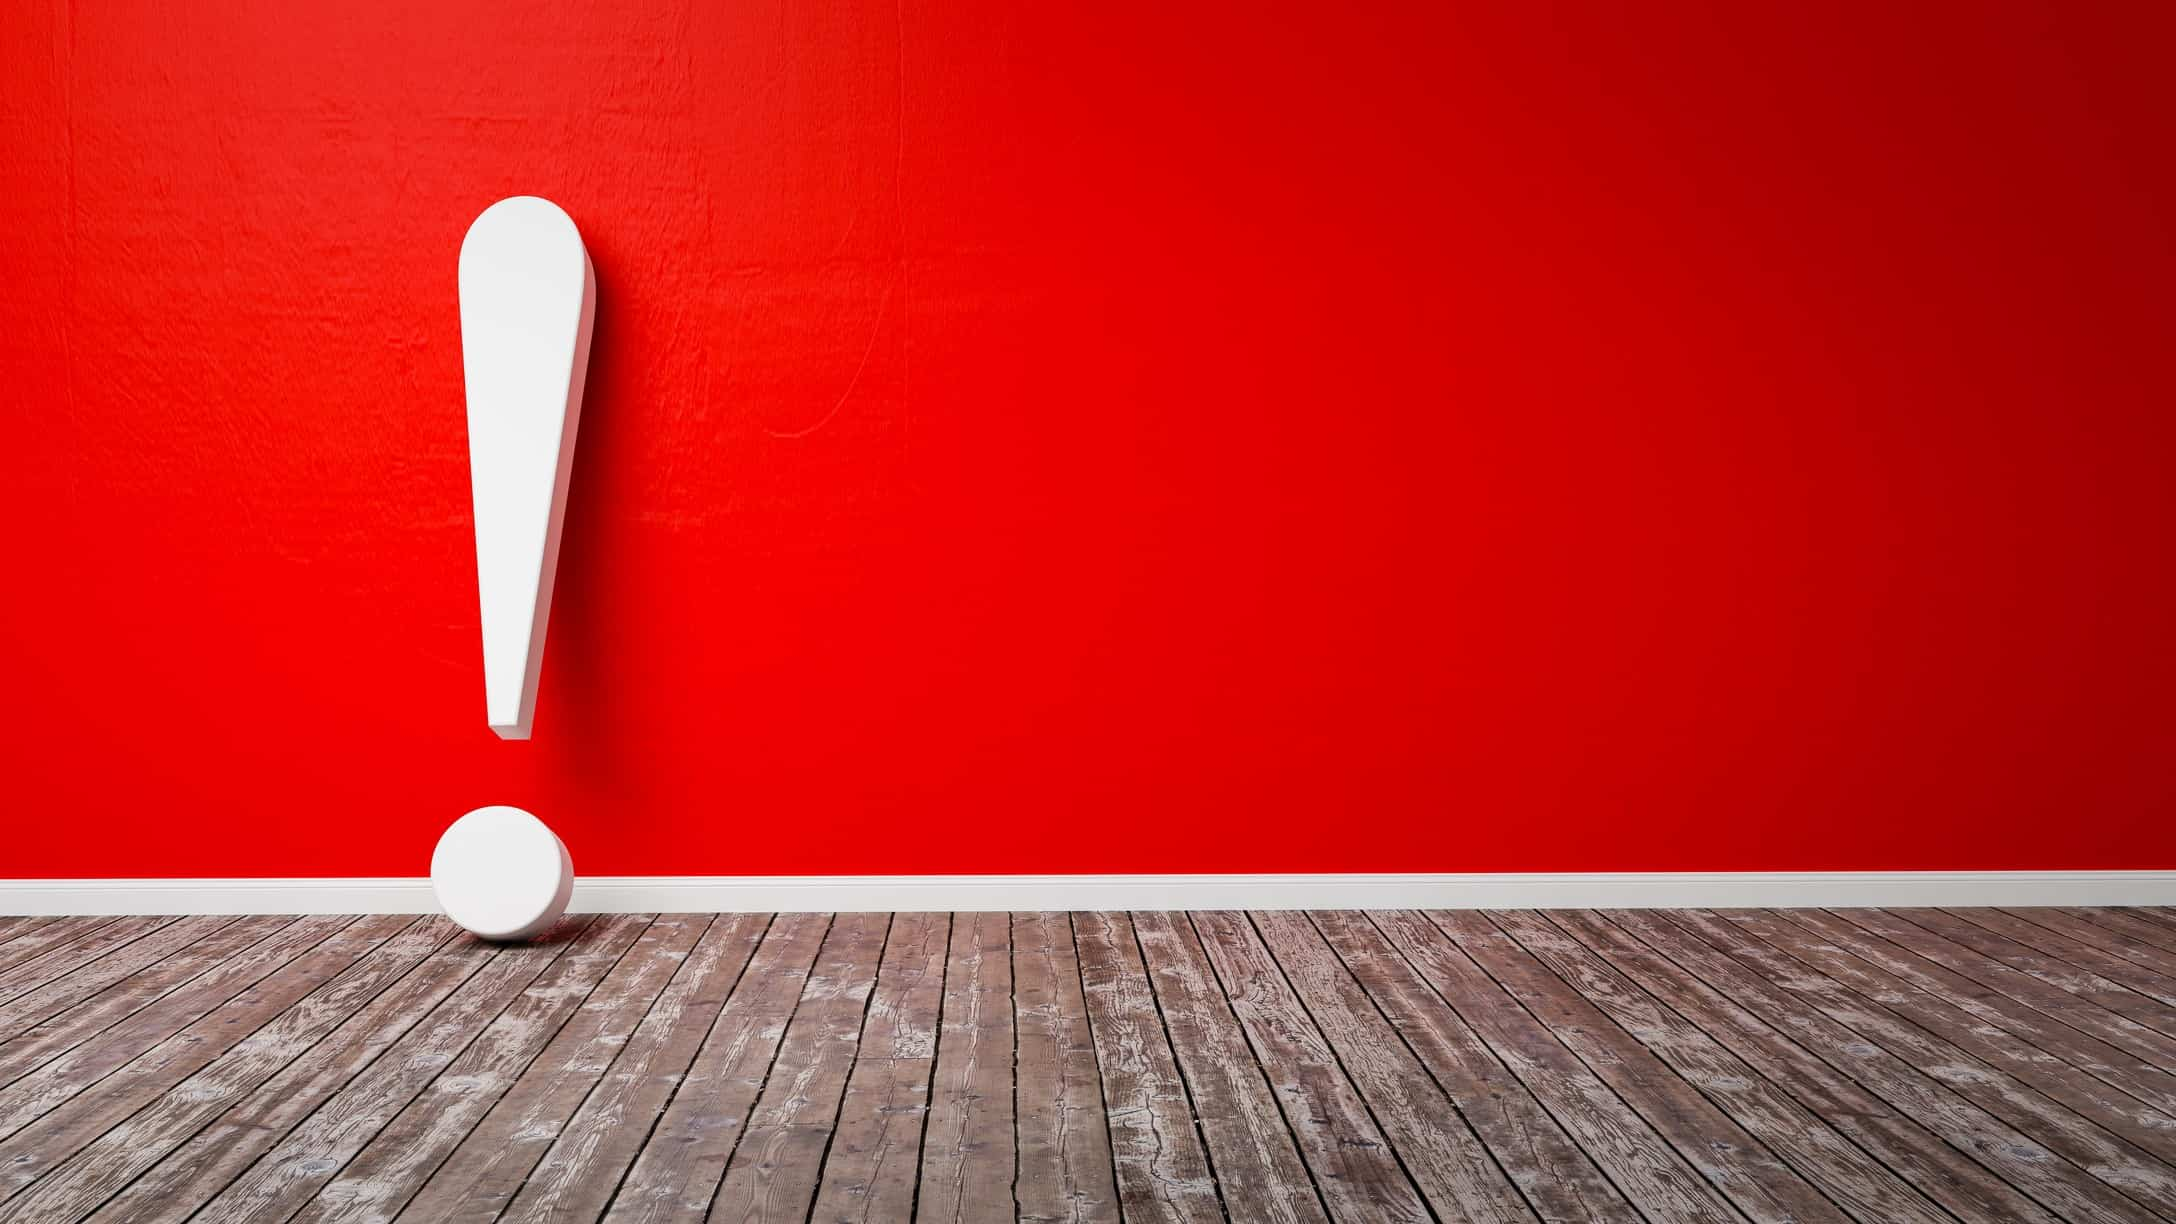 Red wall with large white exclamation mark leaning against it